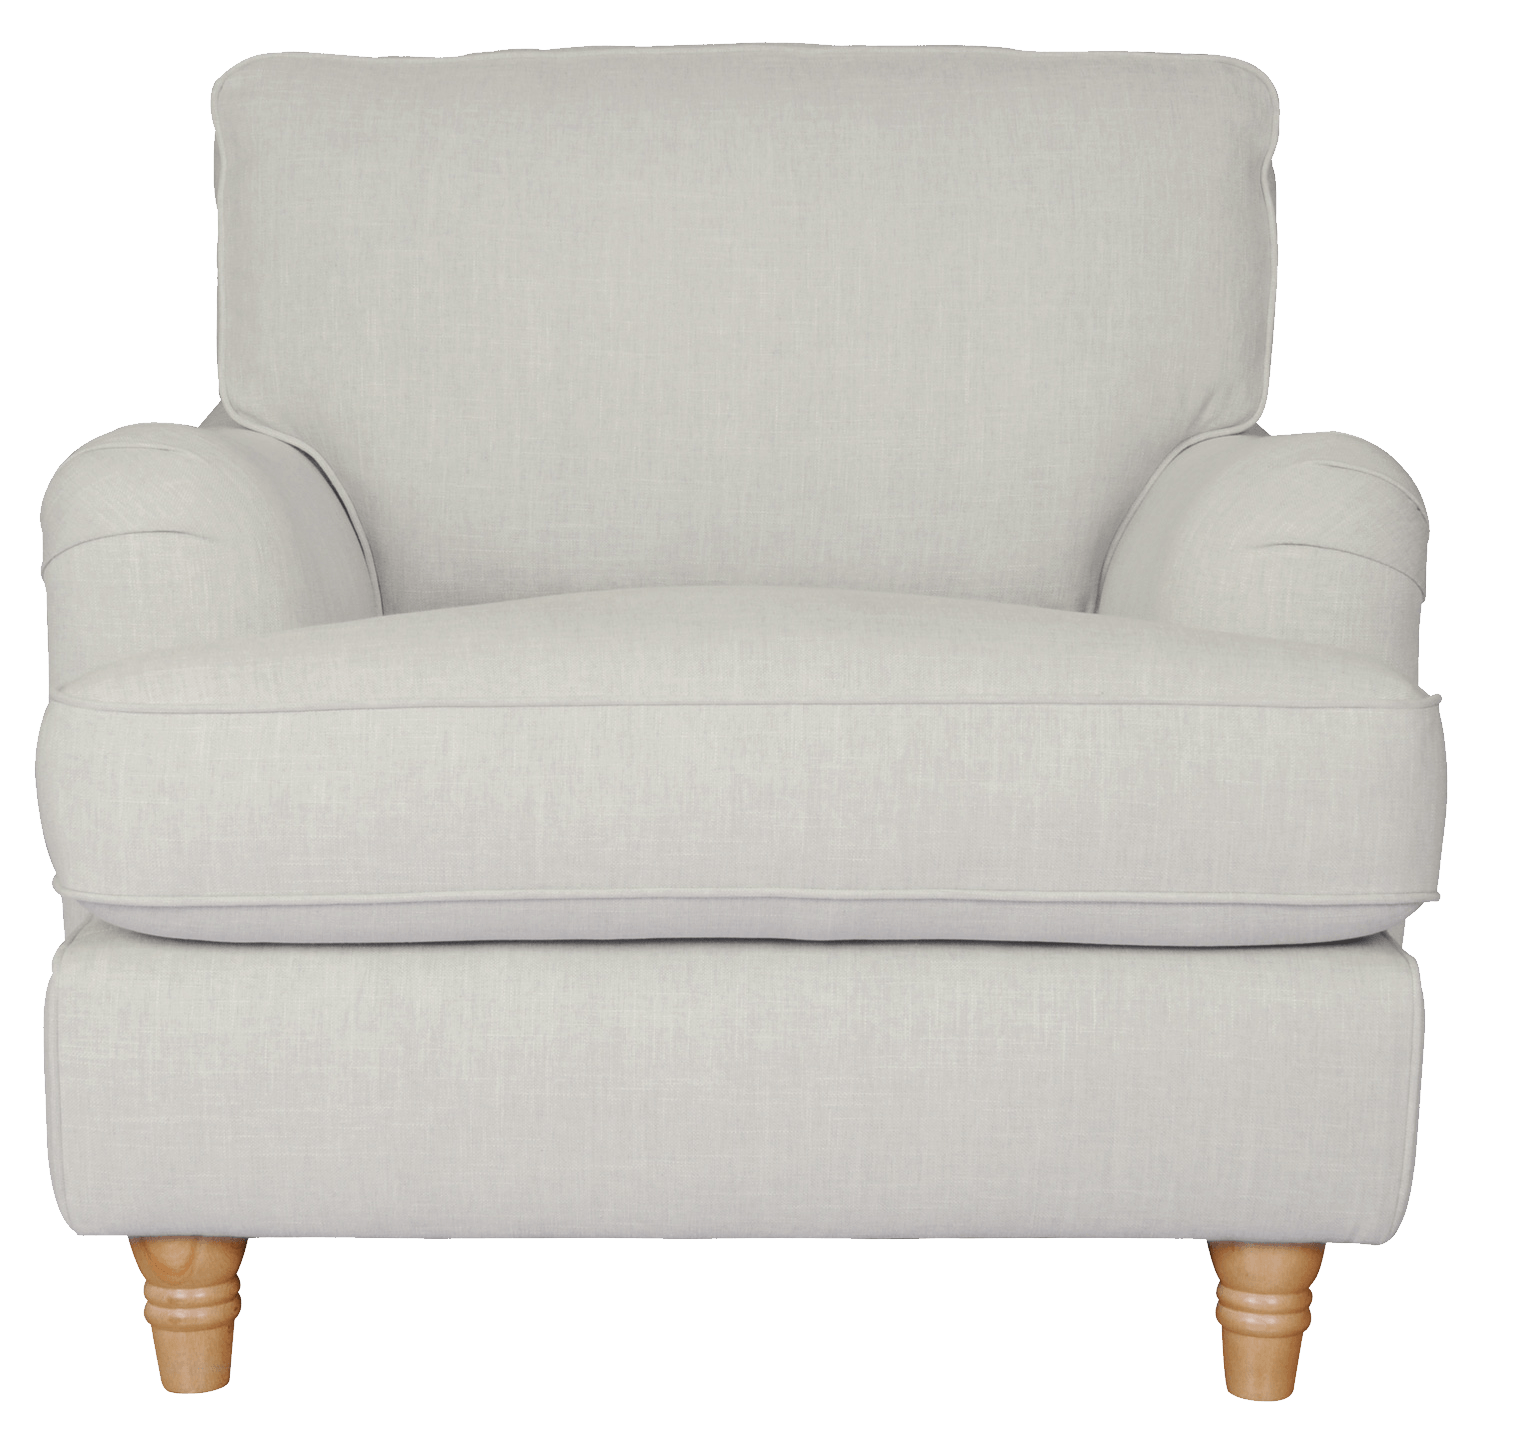 Download White Armchair Image HQ PNG Image